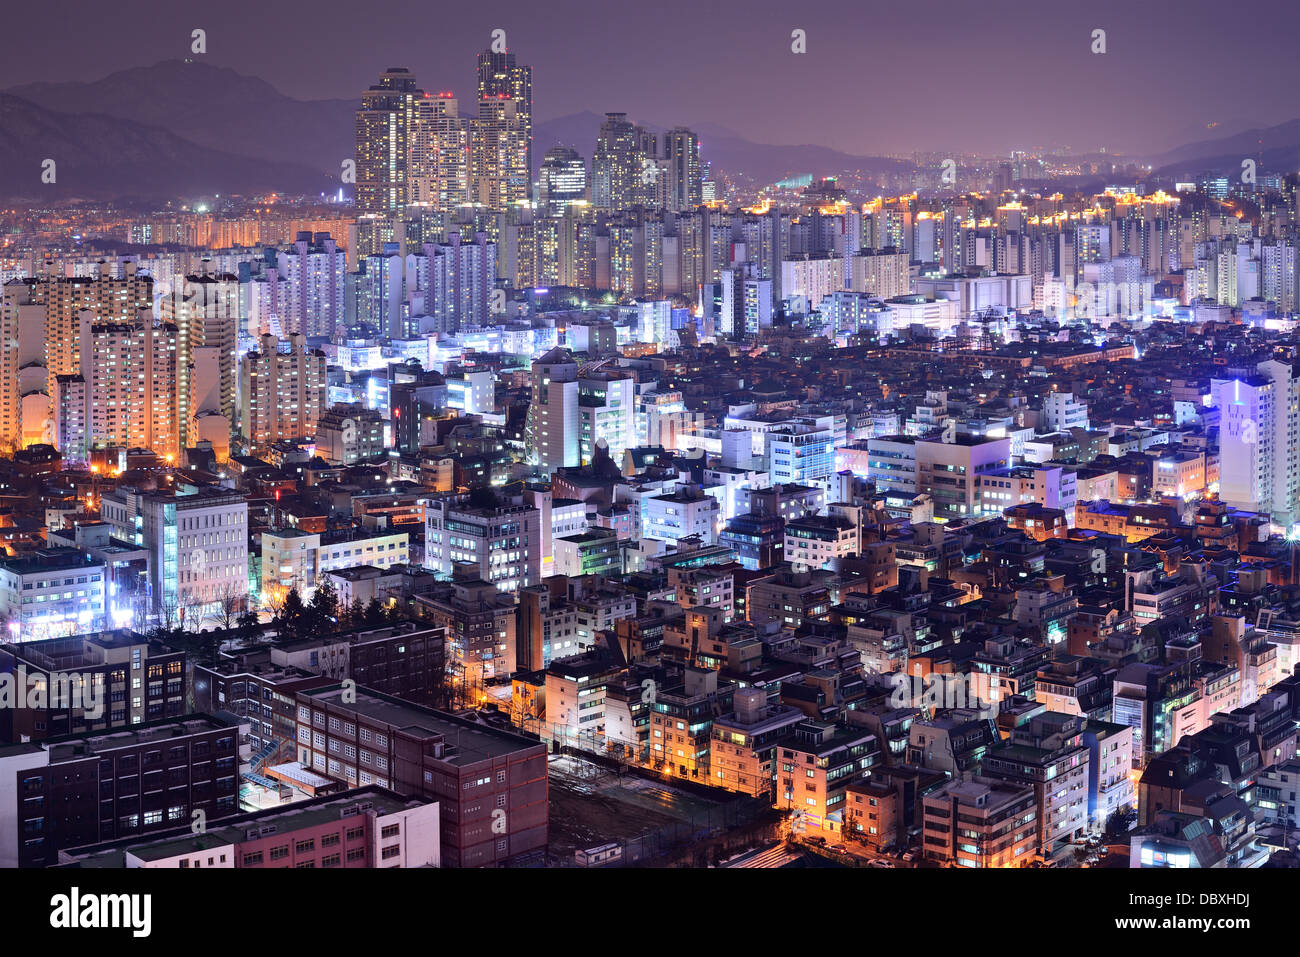 Residential high rises in Gangnam District, Seoul, South Korea skyline at night. - Stock Image